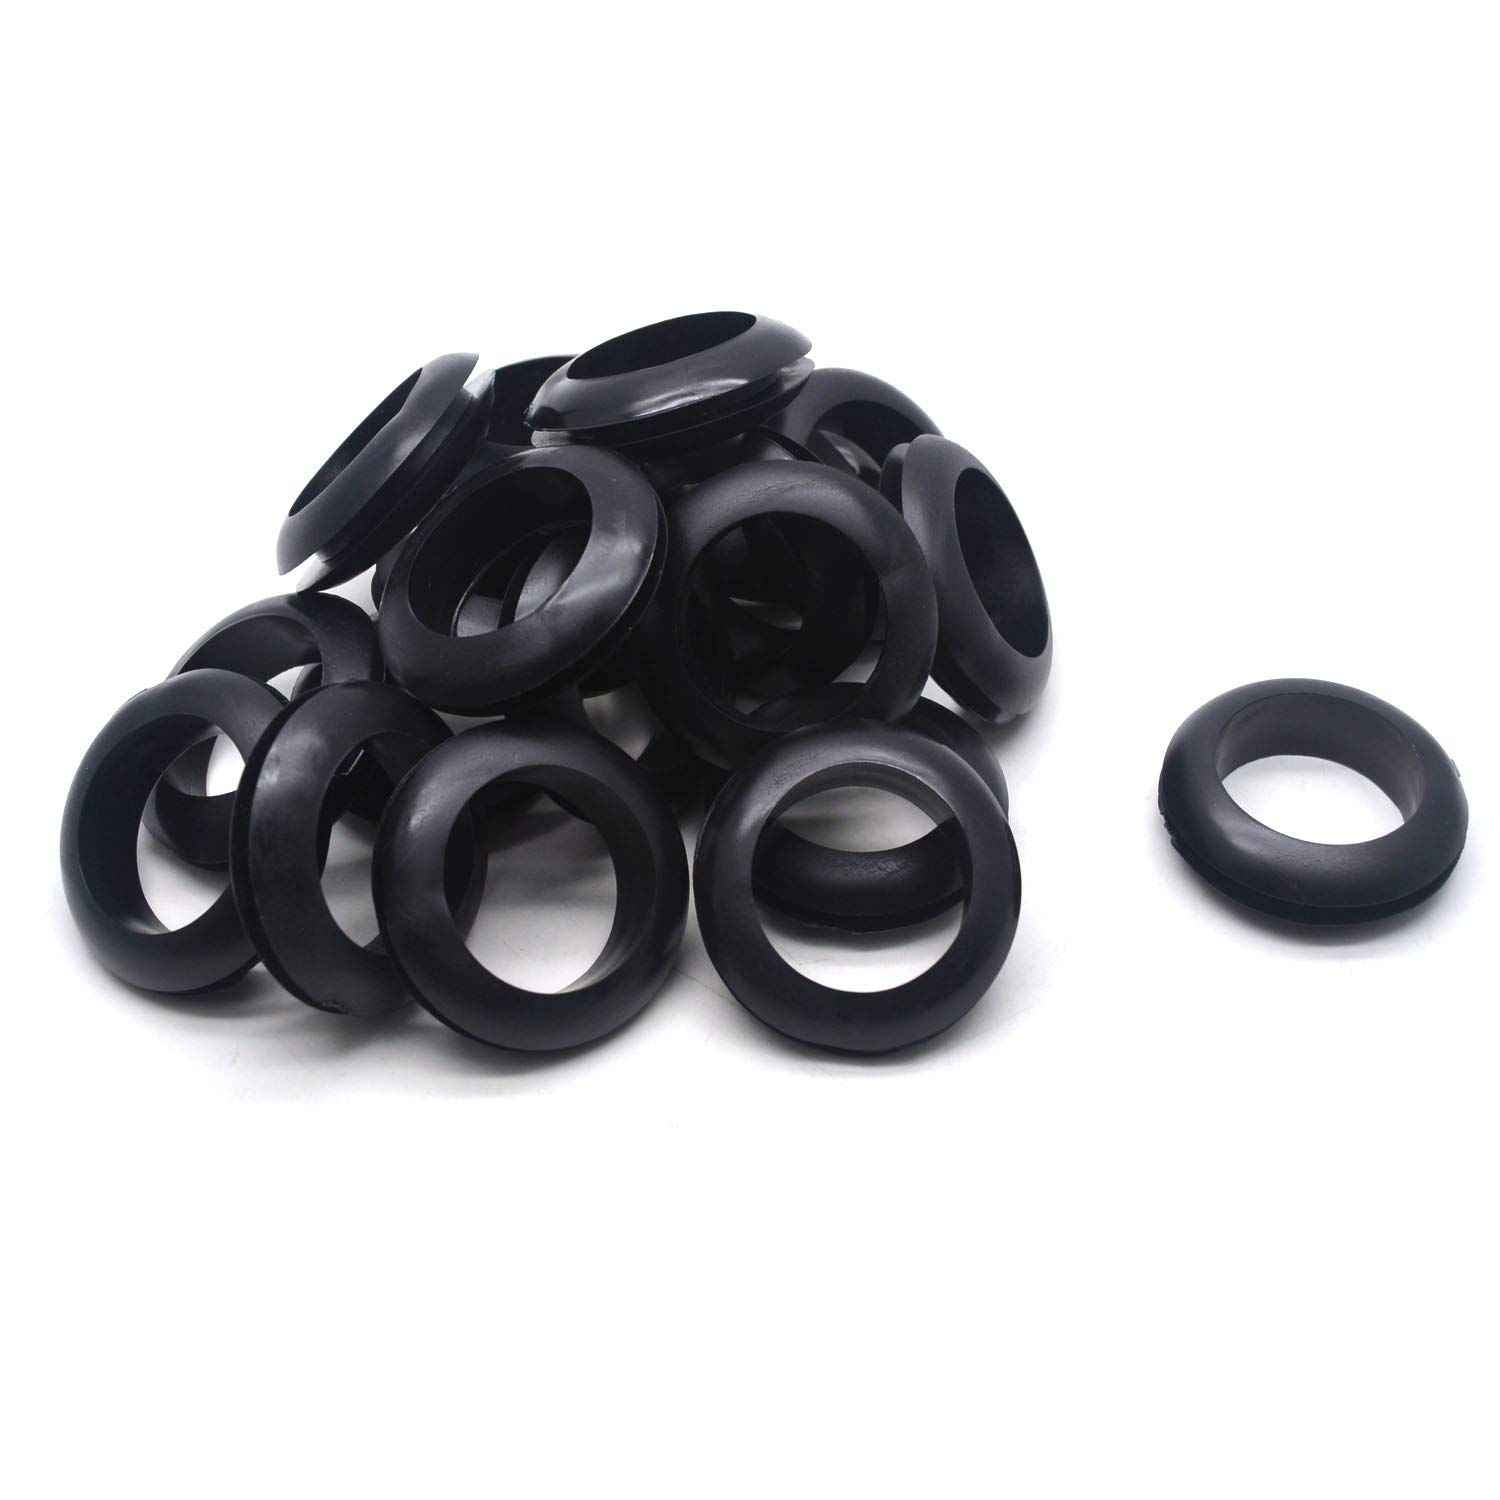 Antrader 20 Pack 25mm Inner Dia Round Rubber Grommet Double Sided Sealed O Ring Electrical Wire Outlet Loop Prote In 2020 Rubber Grommets Electricity Electrical Wiring